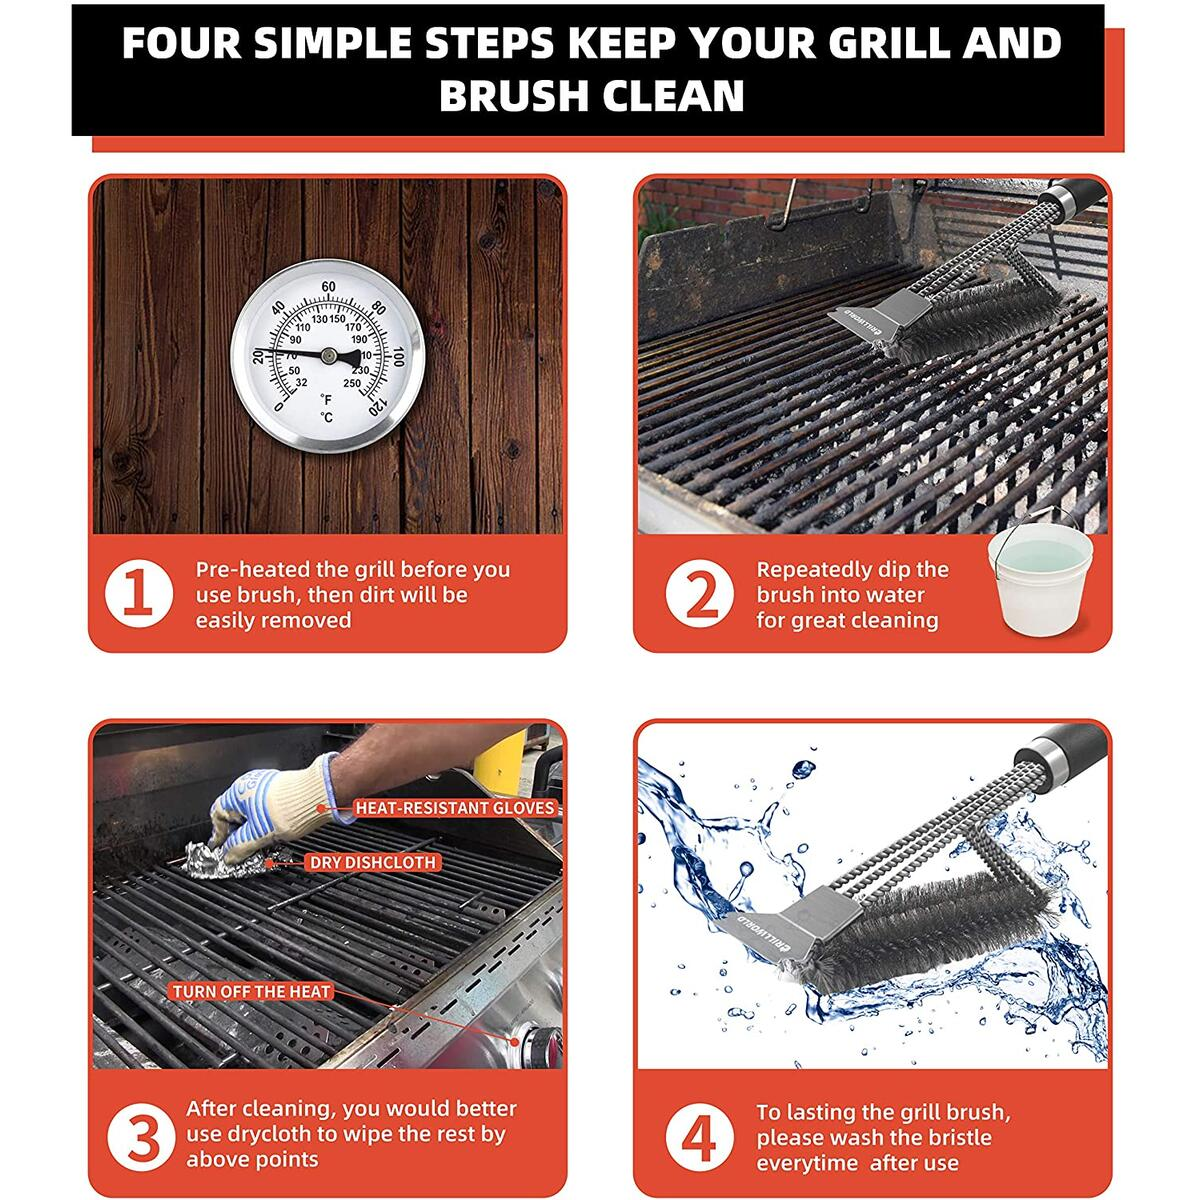 GRILLWORLD Grill Brush and Scraper, 2020 Upgraded 3-in-1 Stainless Steel Wire BBQ Brush, Strong Tough Durable BBQ Brush for Weber Gas & Charcoal Grilling Grates